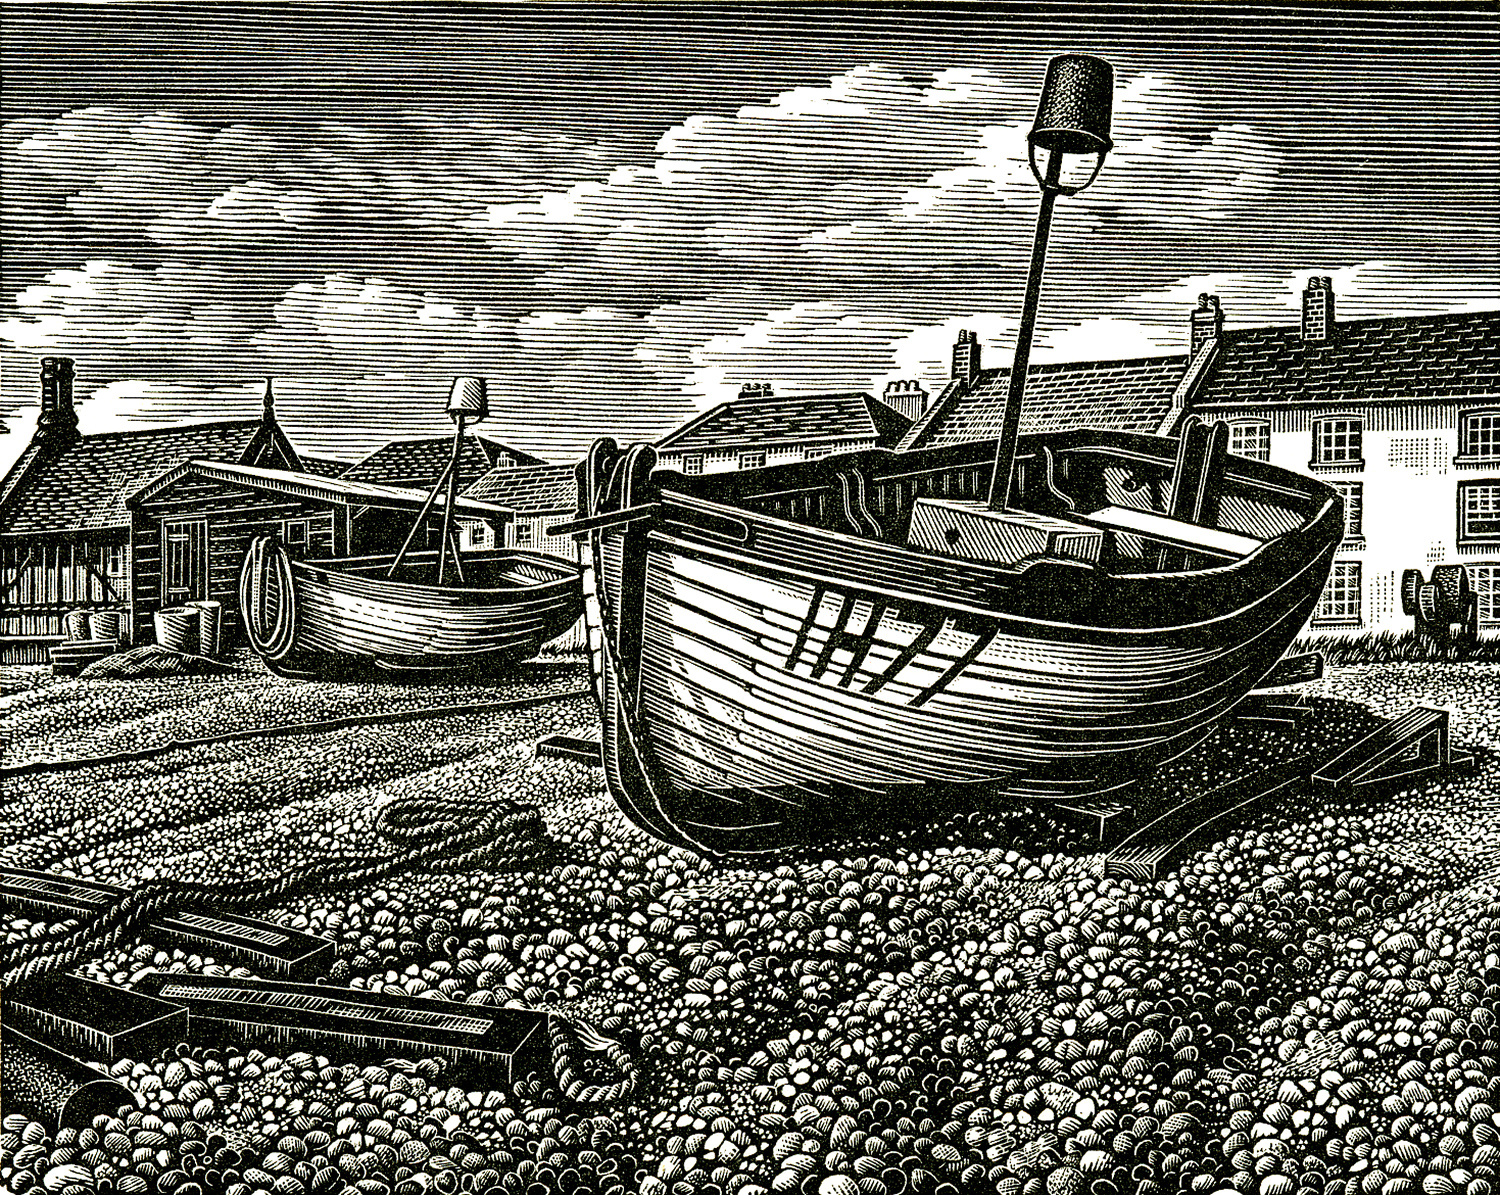 Aldeburgh Beach by Howard Phipps